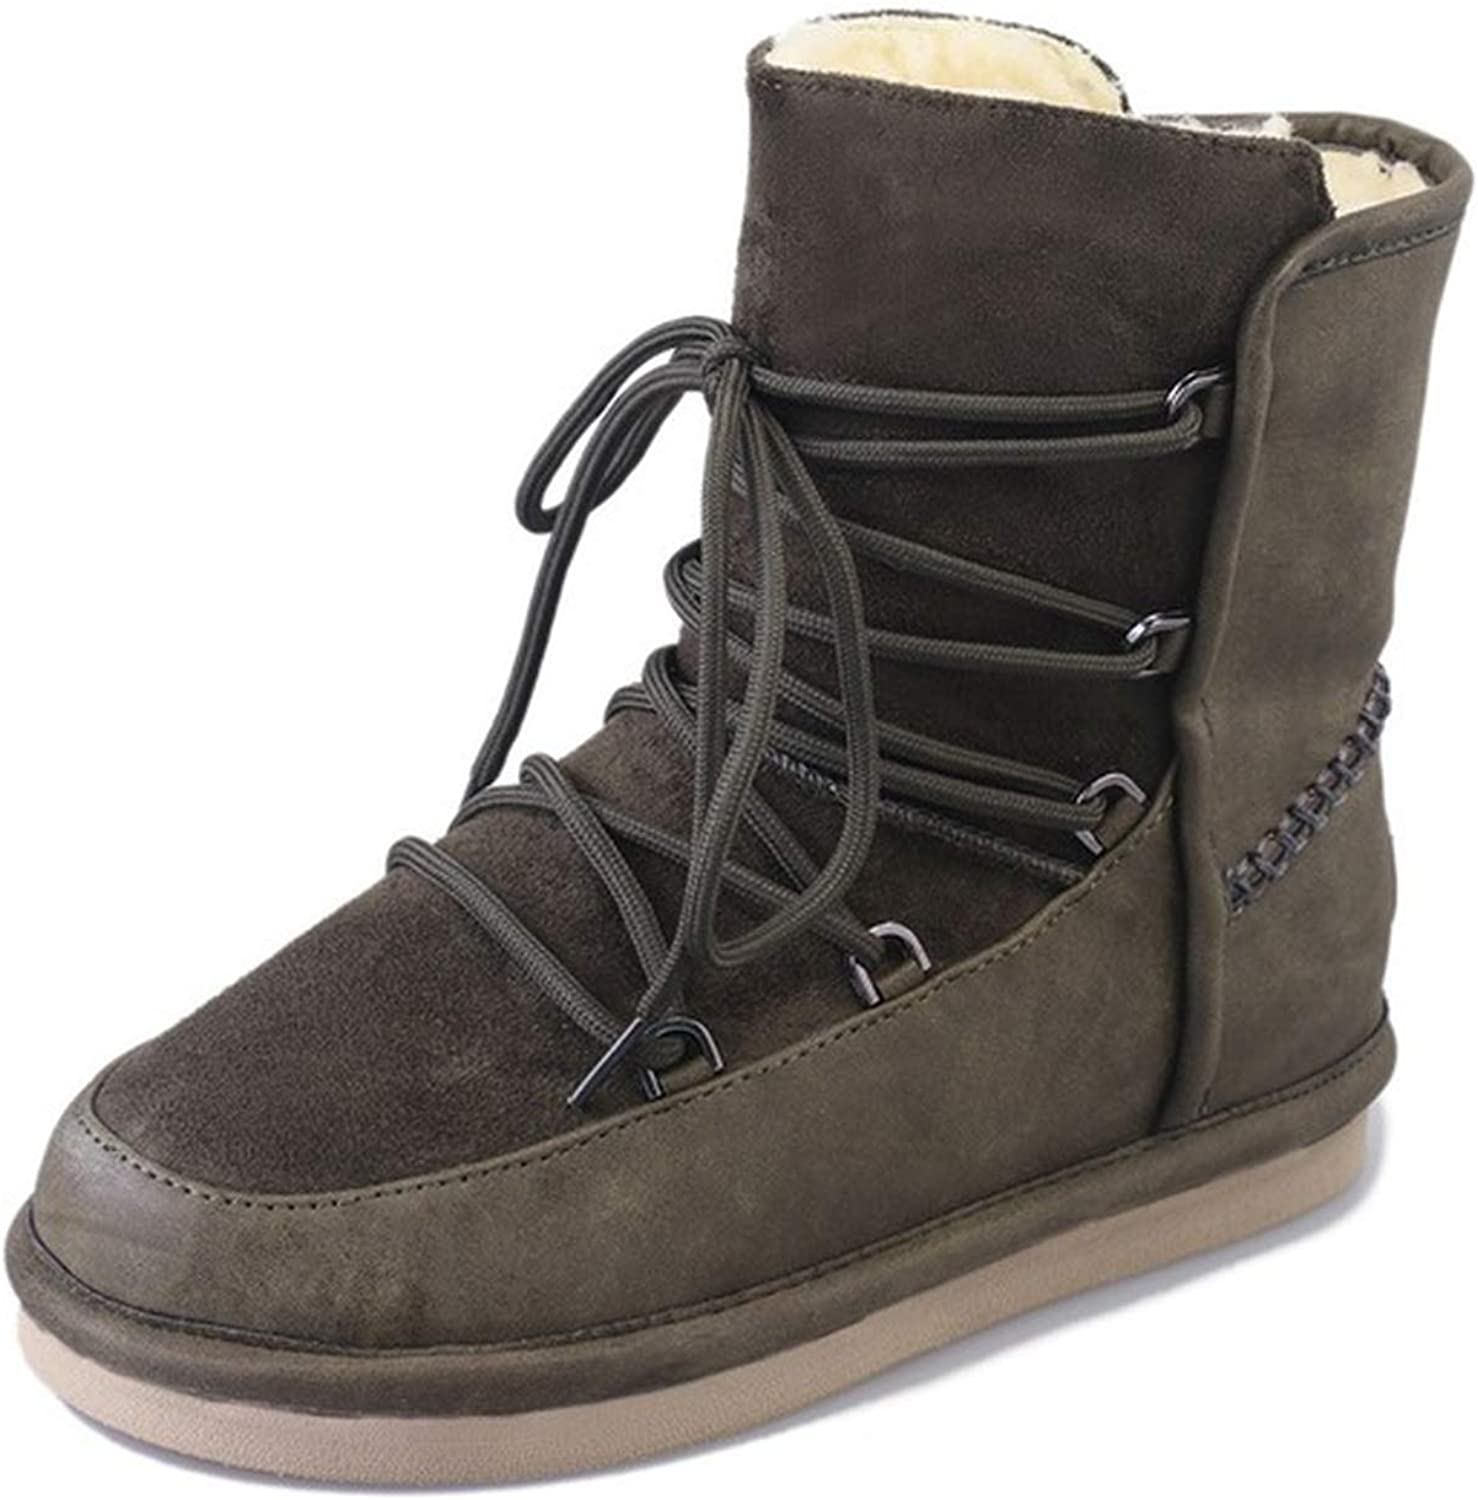 colorful Dream- Women's Winter Boots Genuine Leather Warm Wool Waterproof Ladies Boot Snow Boots Women Waterproof shoes Fashion Woman Boot